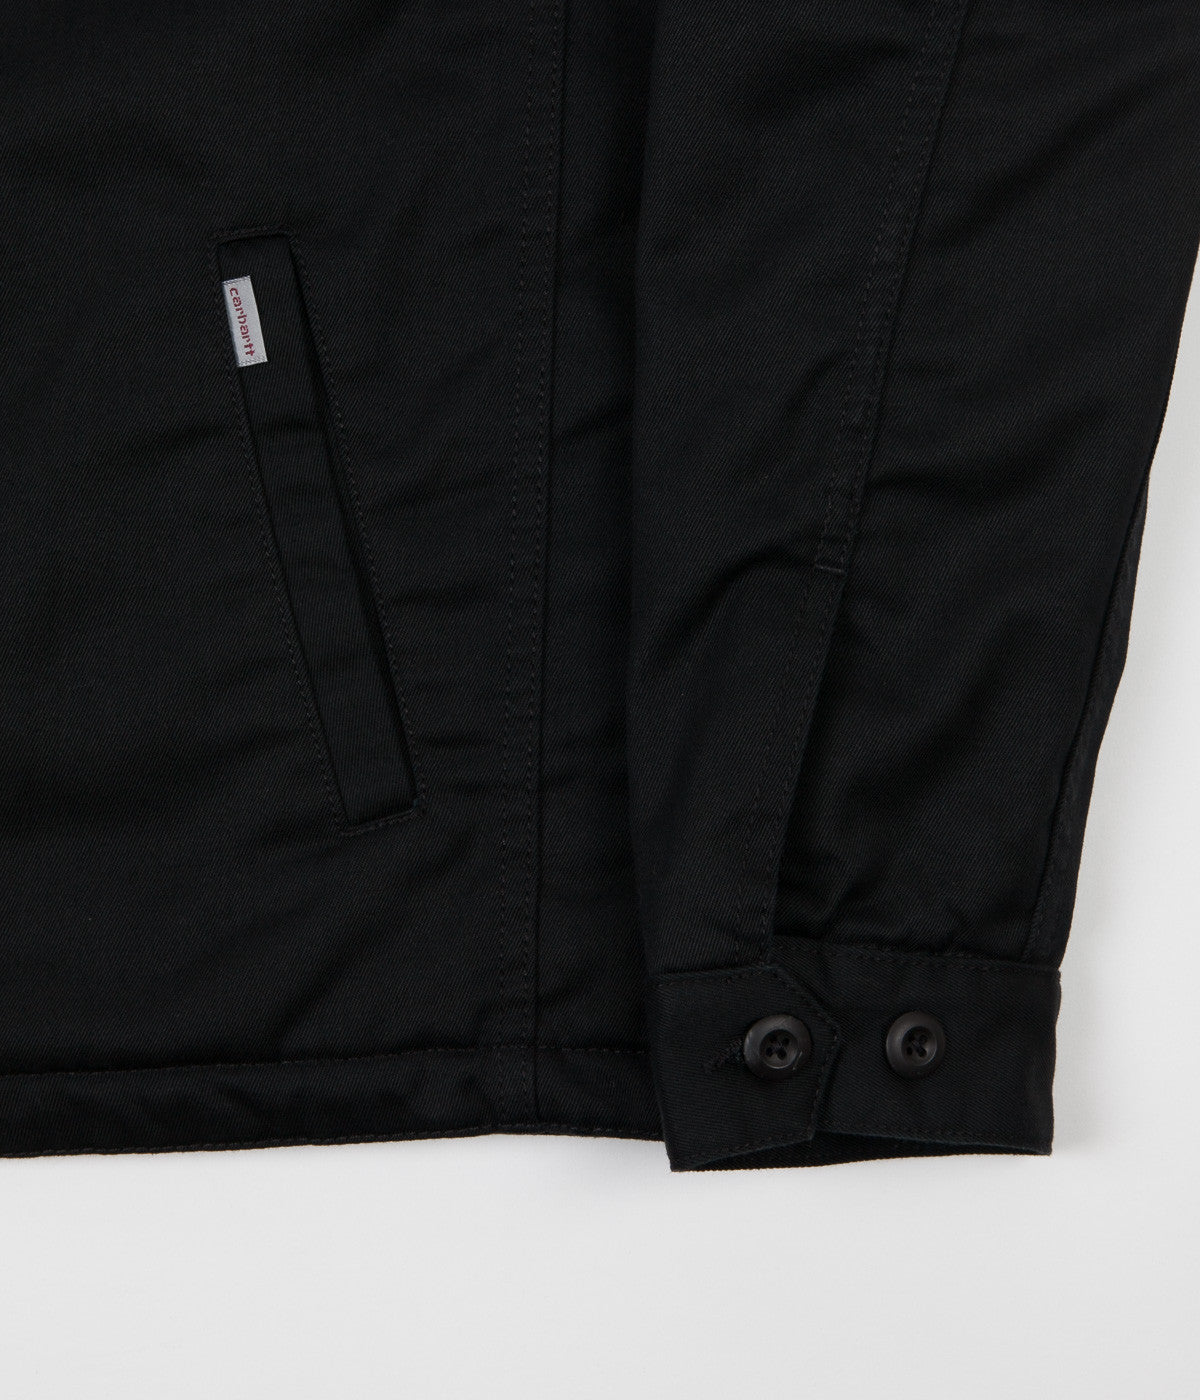 Carhartt Lined Modular Jacket - Black